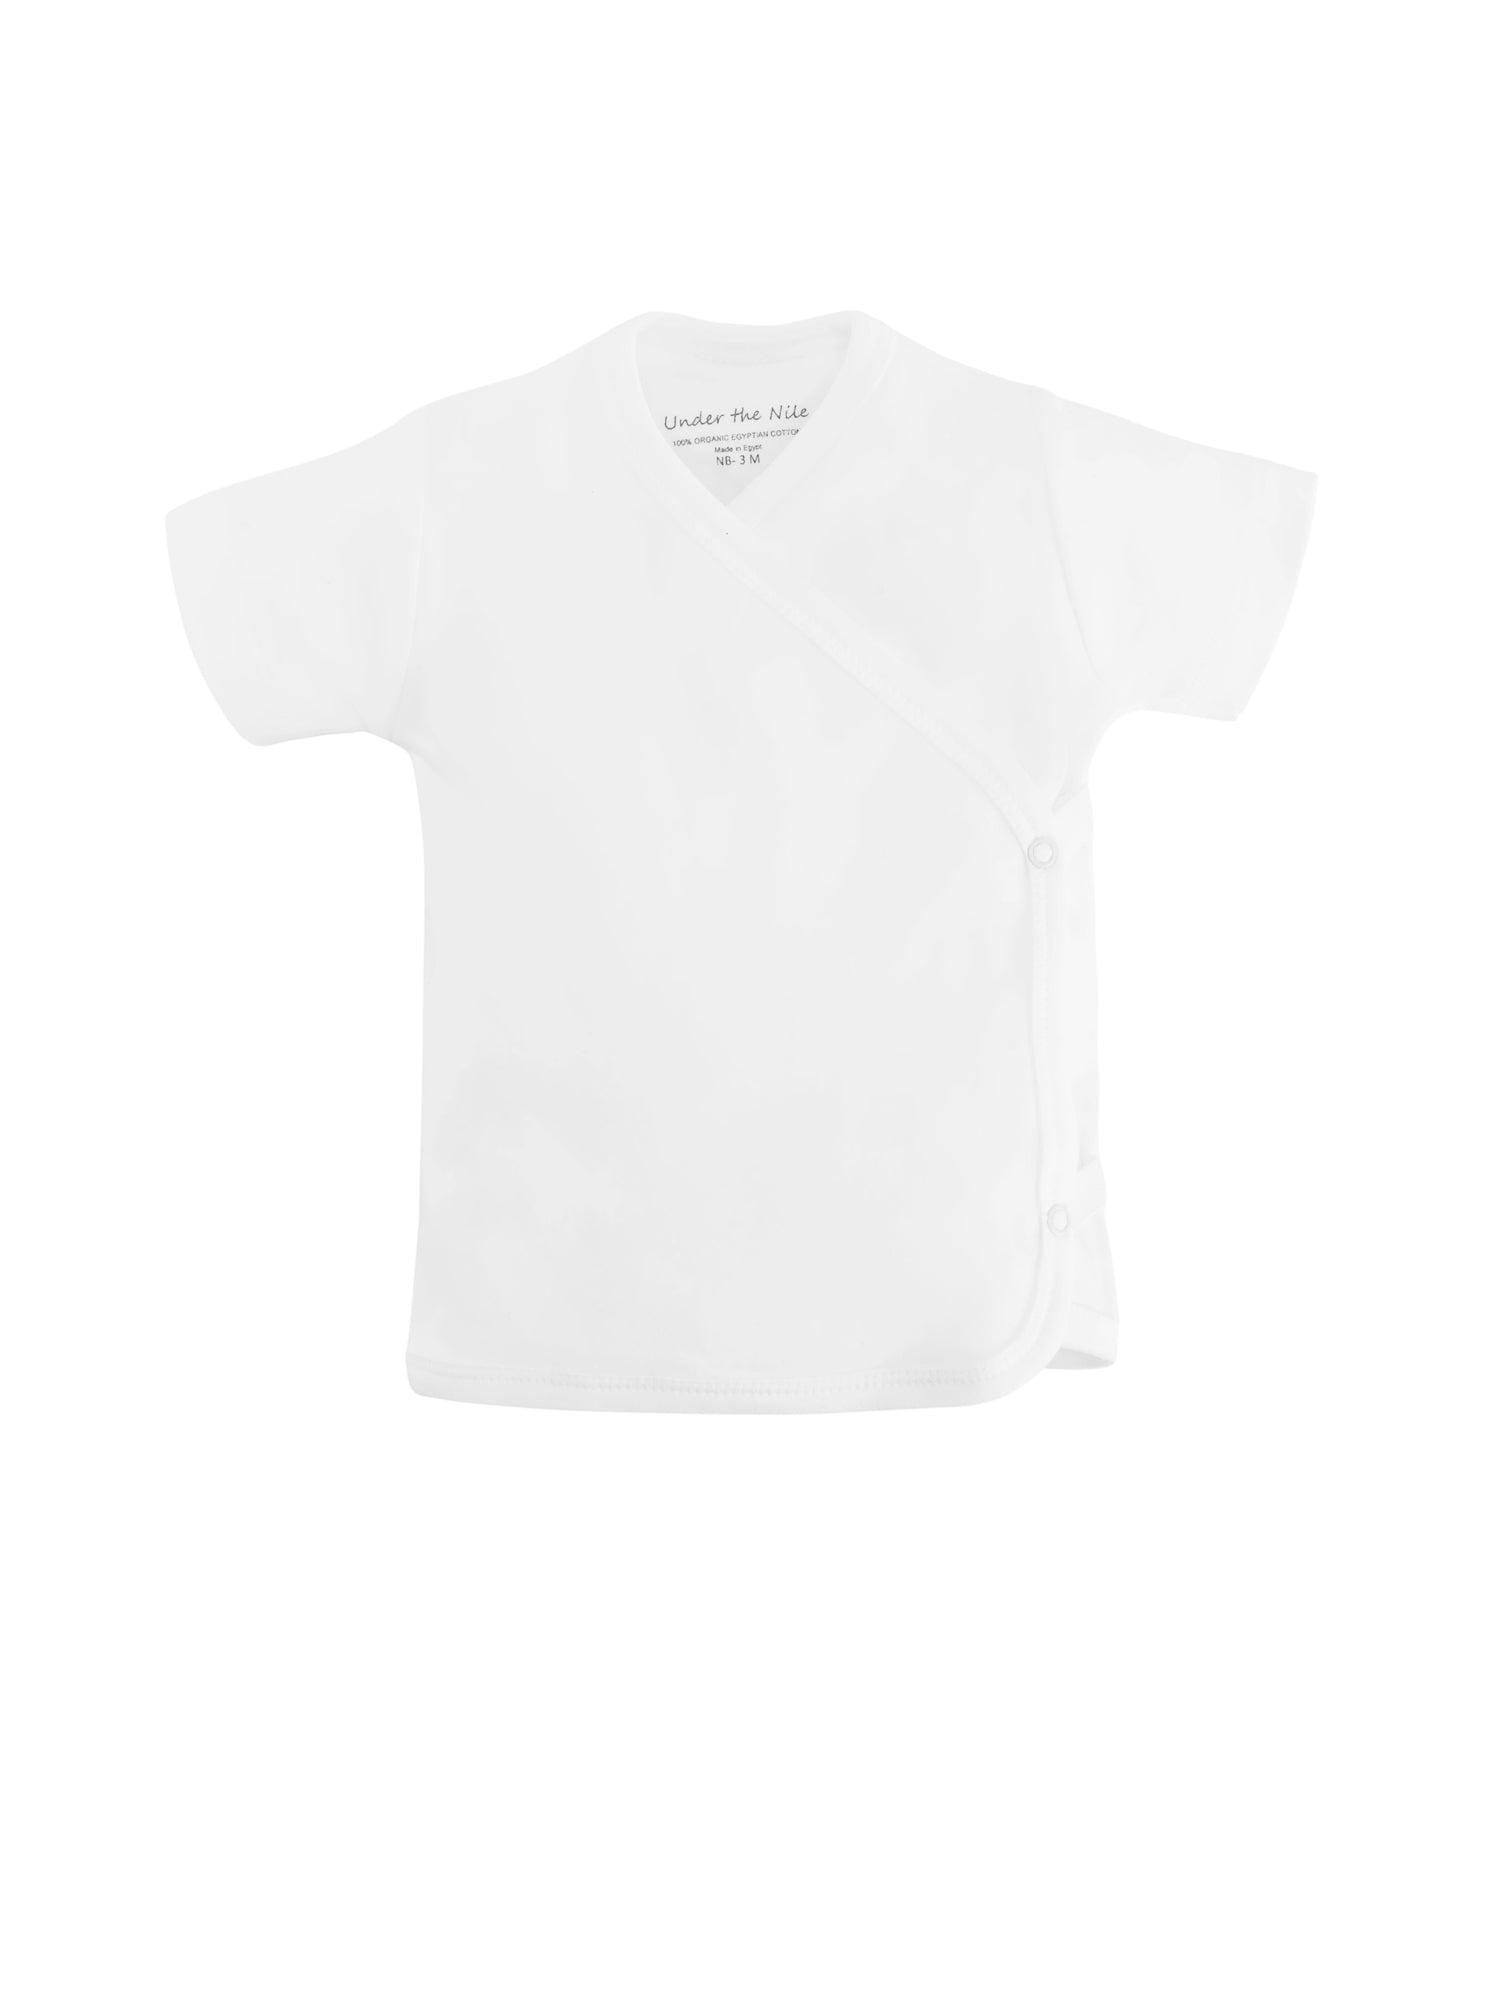 Short Sleeve Side Snap T-shirt - White Value Pack